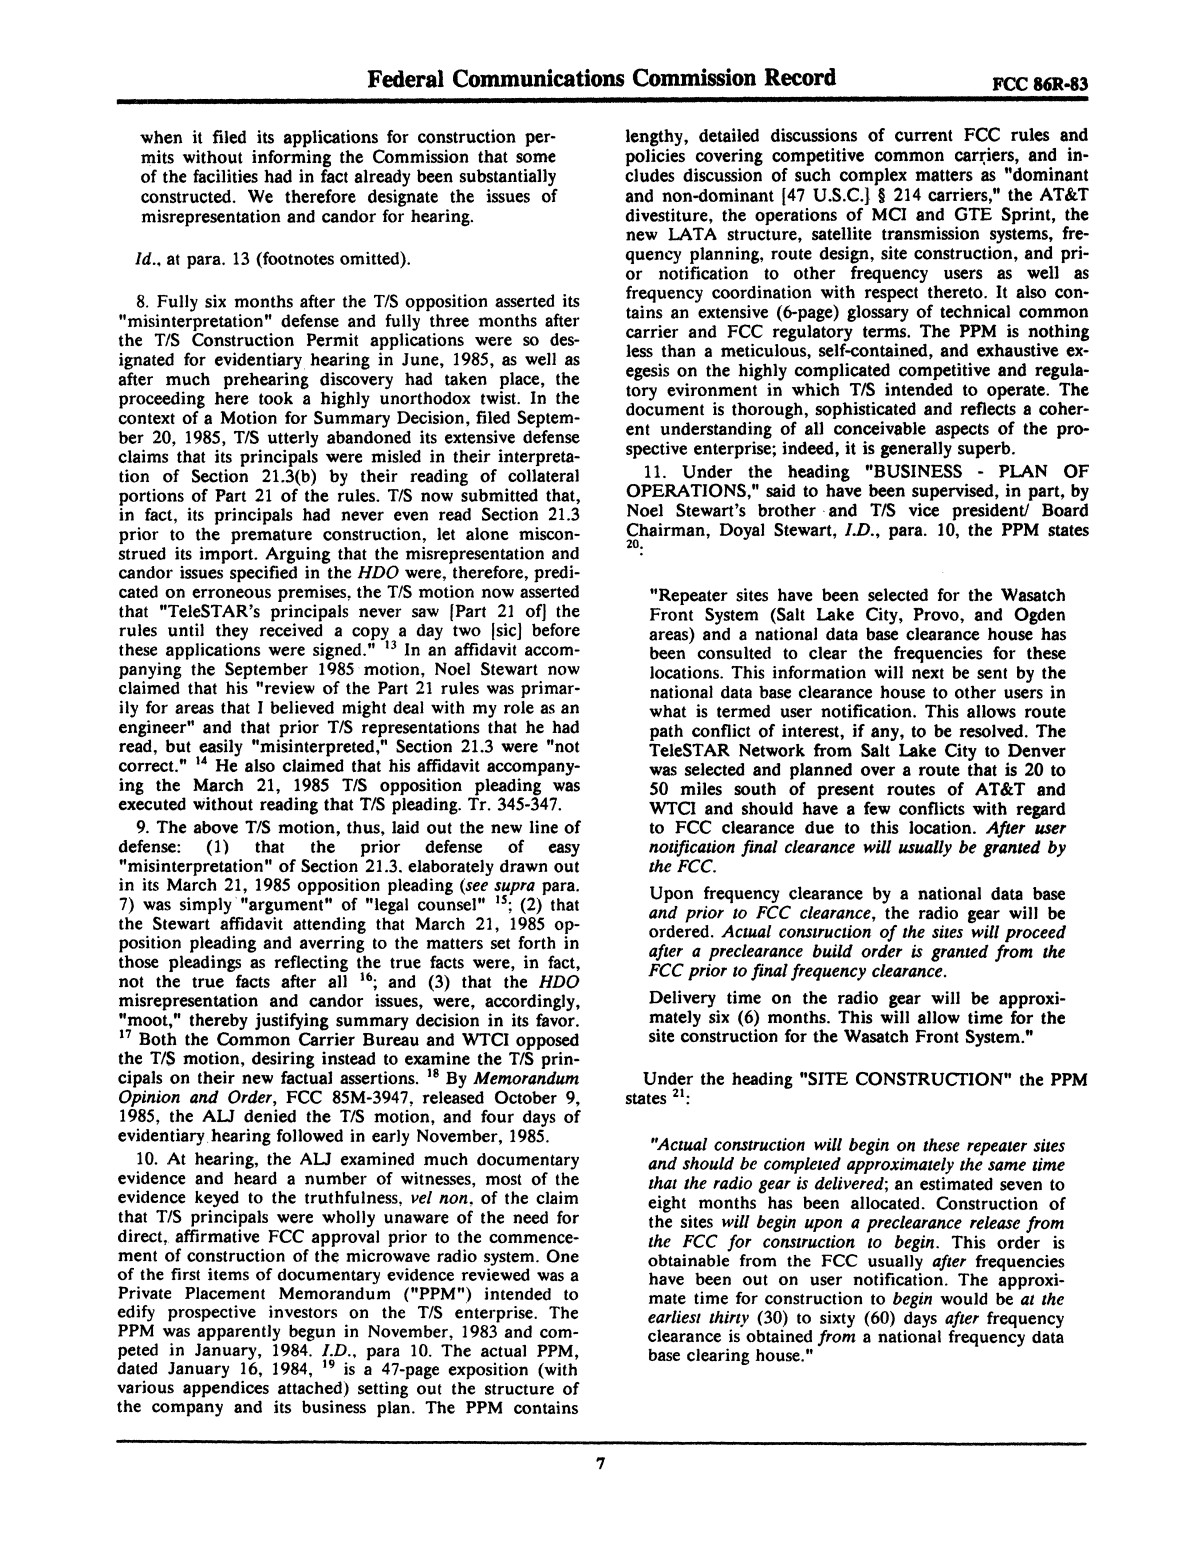 FCC Record, Volume 2, No. 1, Pages 1 to 409, January 5 - January 16, 1987                                                                                                      7